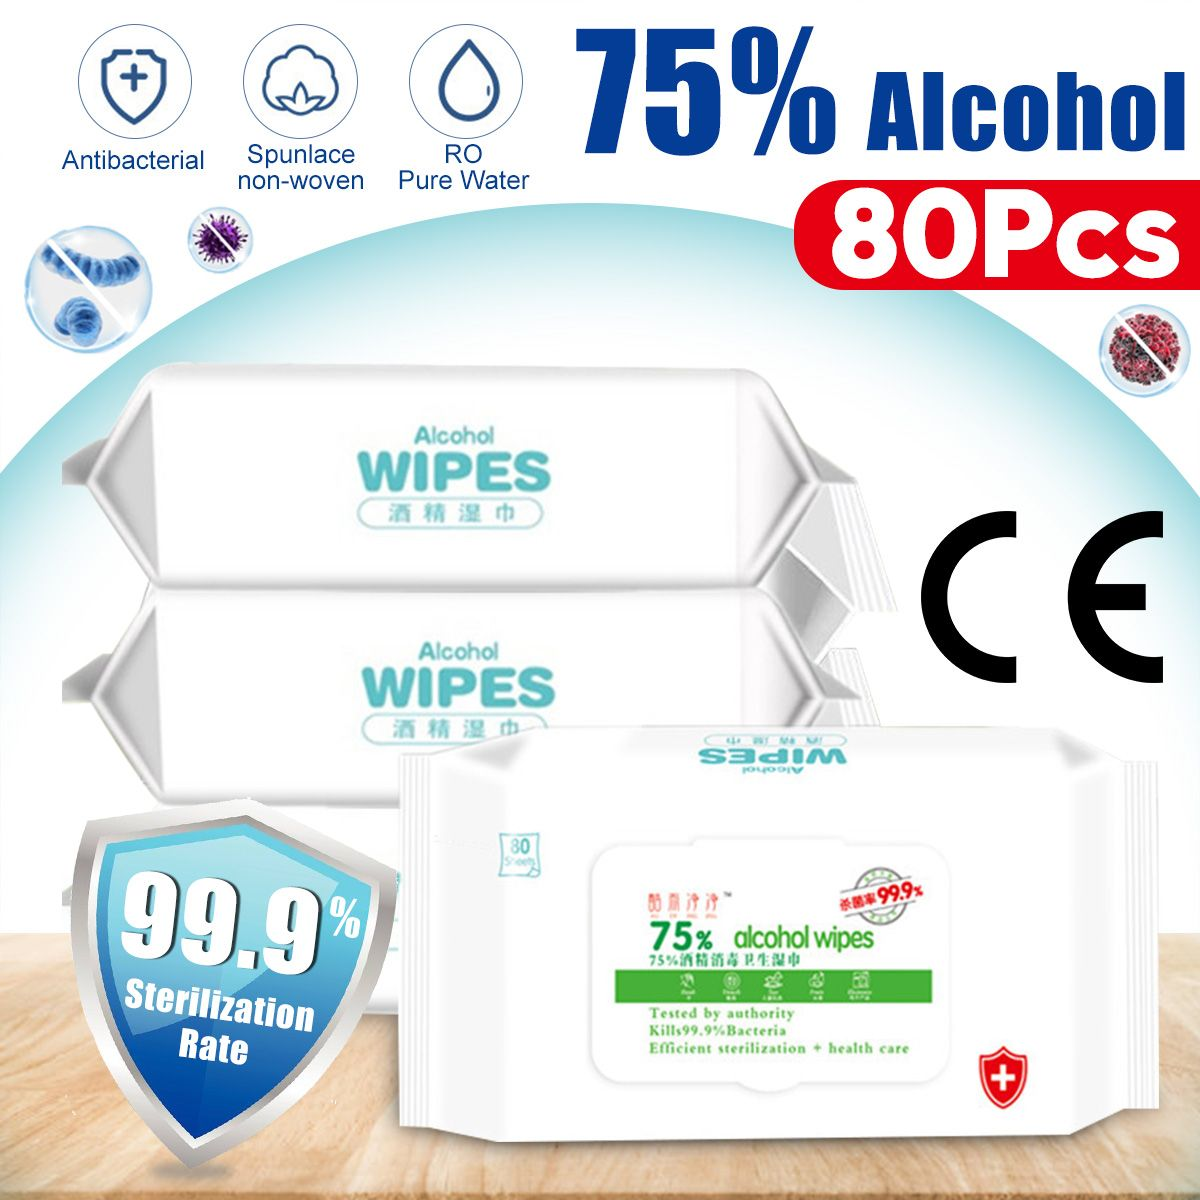 80pcs/lot Disinfect Wipes Soft Alcohol 75% Wipe Antiseptic Pads Large Wet Wipe Sterilization First Aid Cleaning Tissue Care Wipe